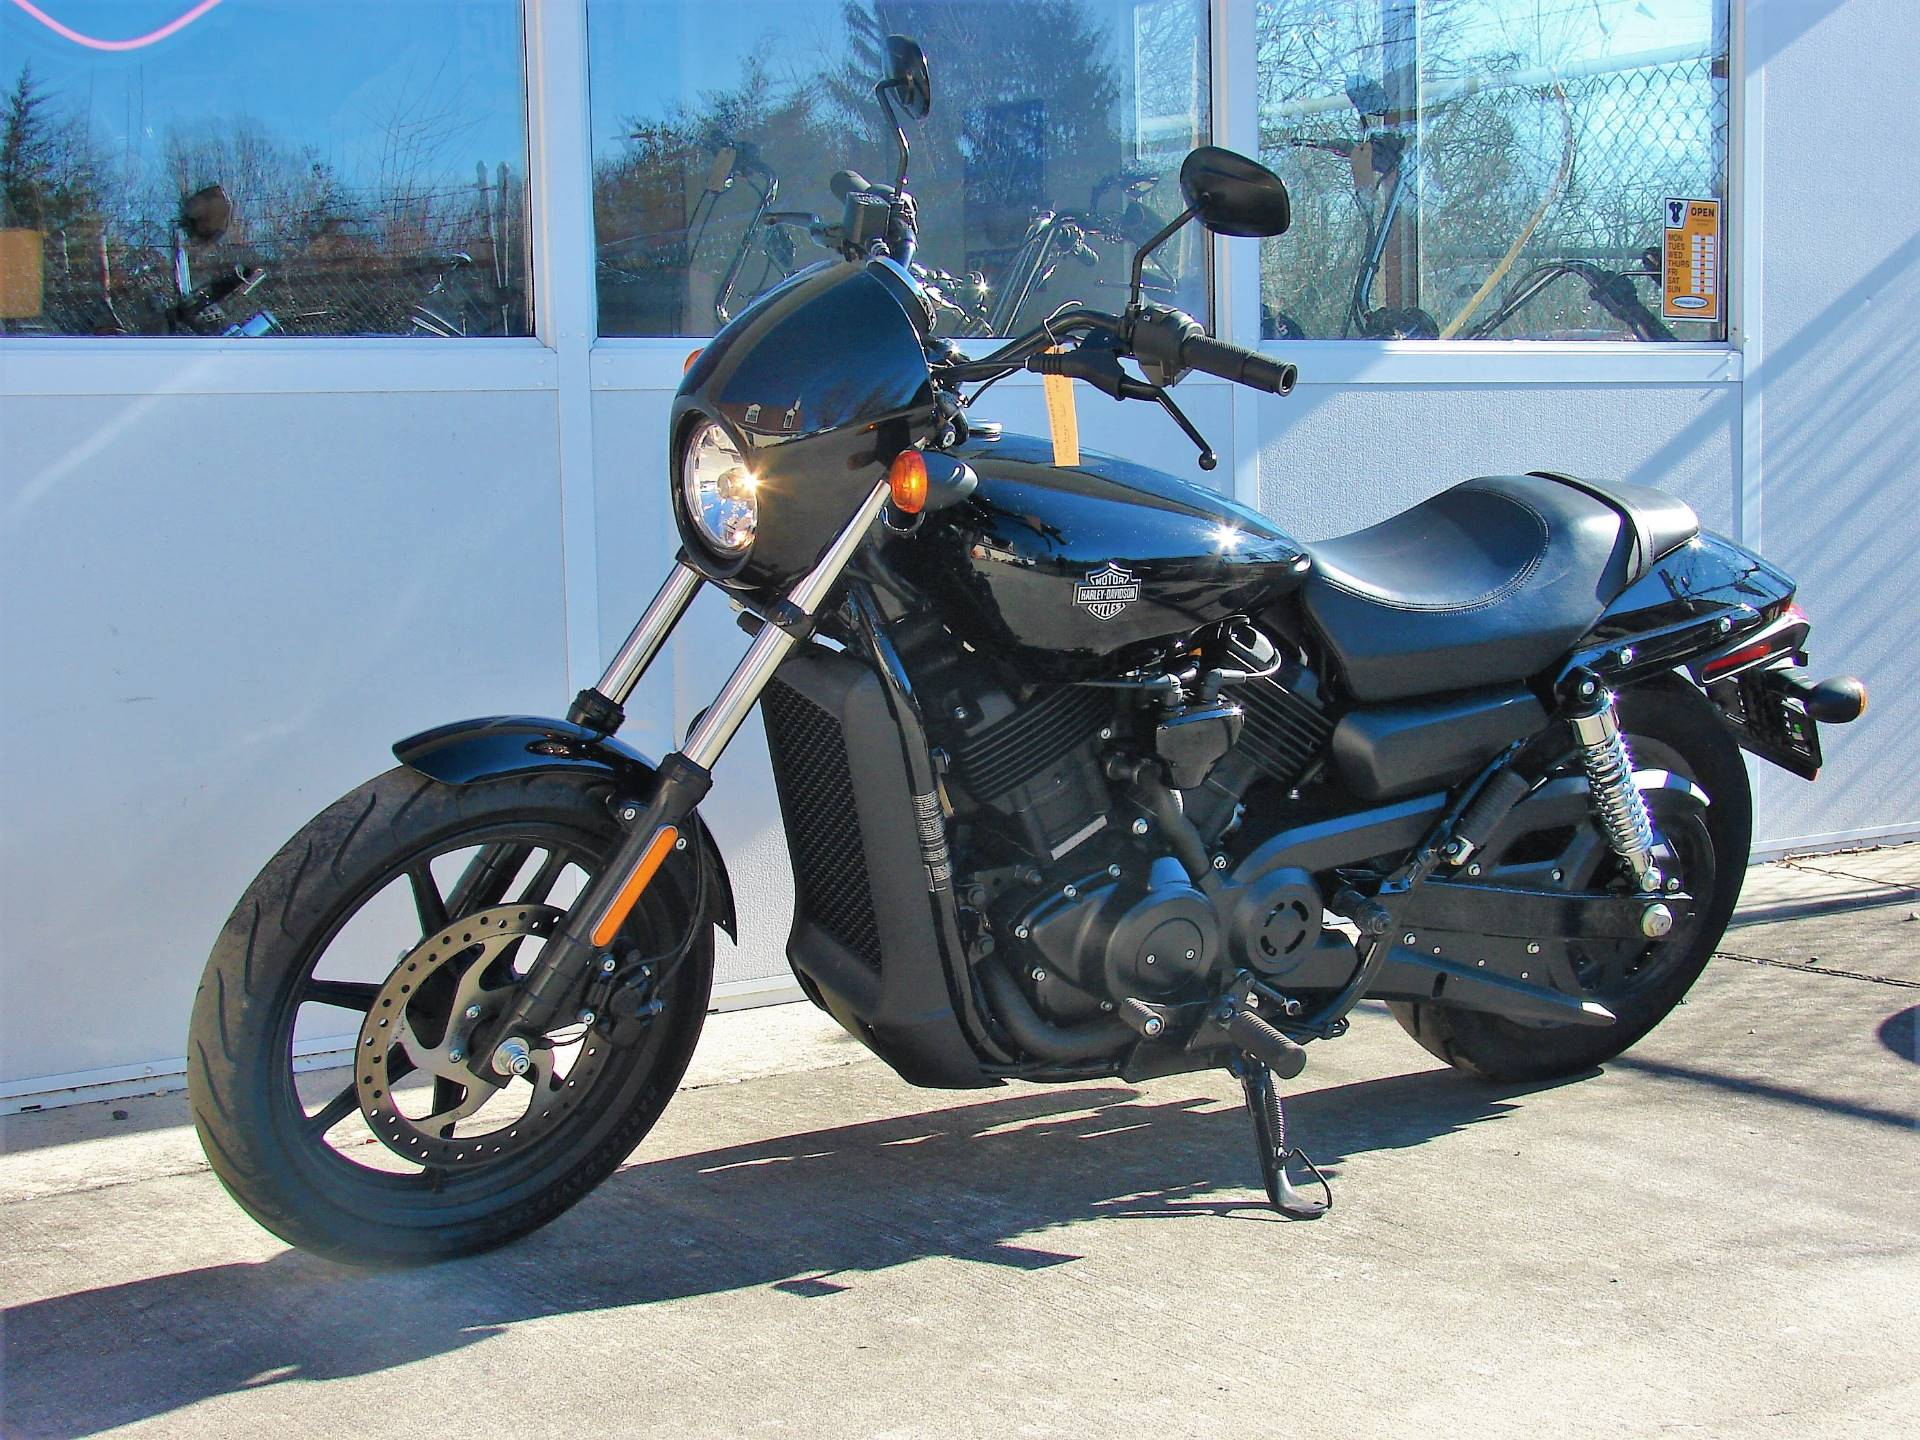 2017 Harley-Davidson XG500 Street Motorcycle in Williamstown, New Jersey - Photo 7